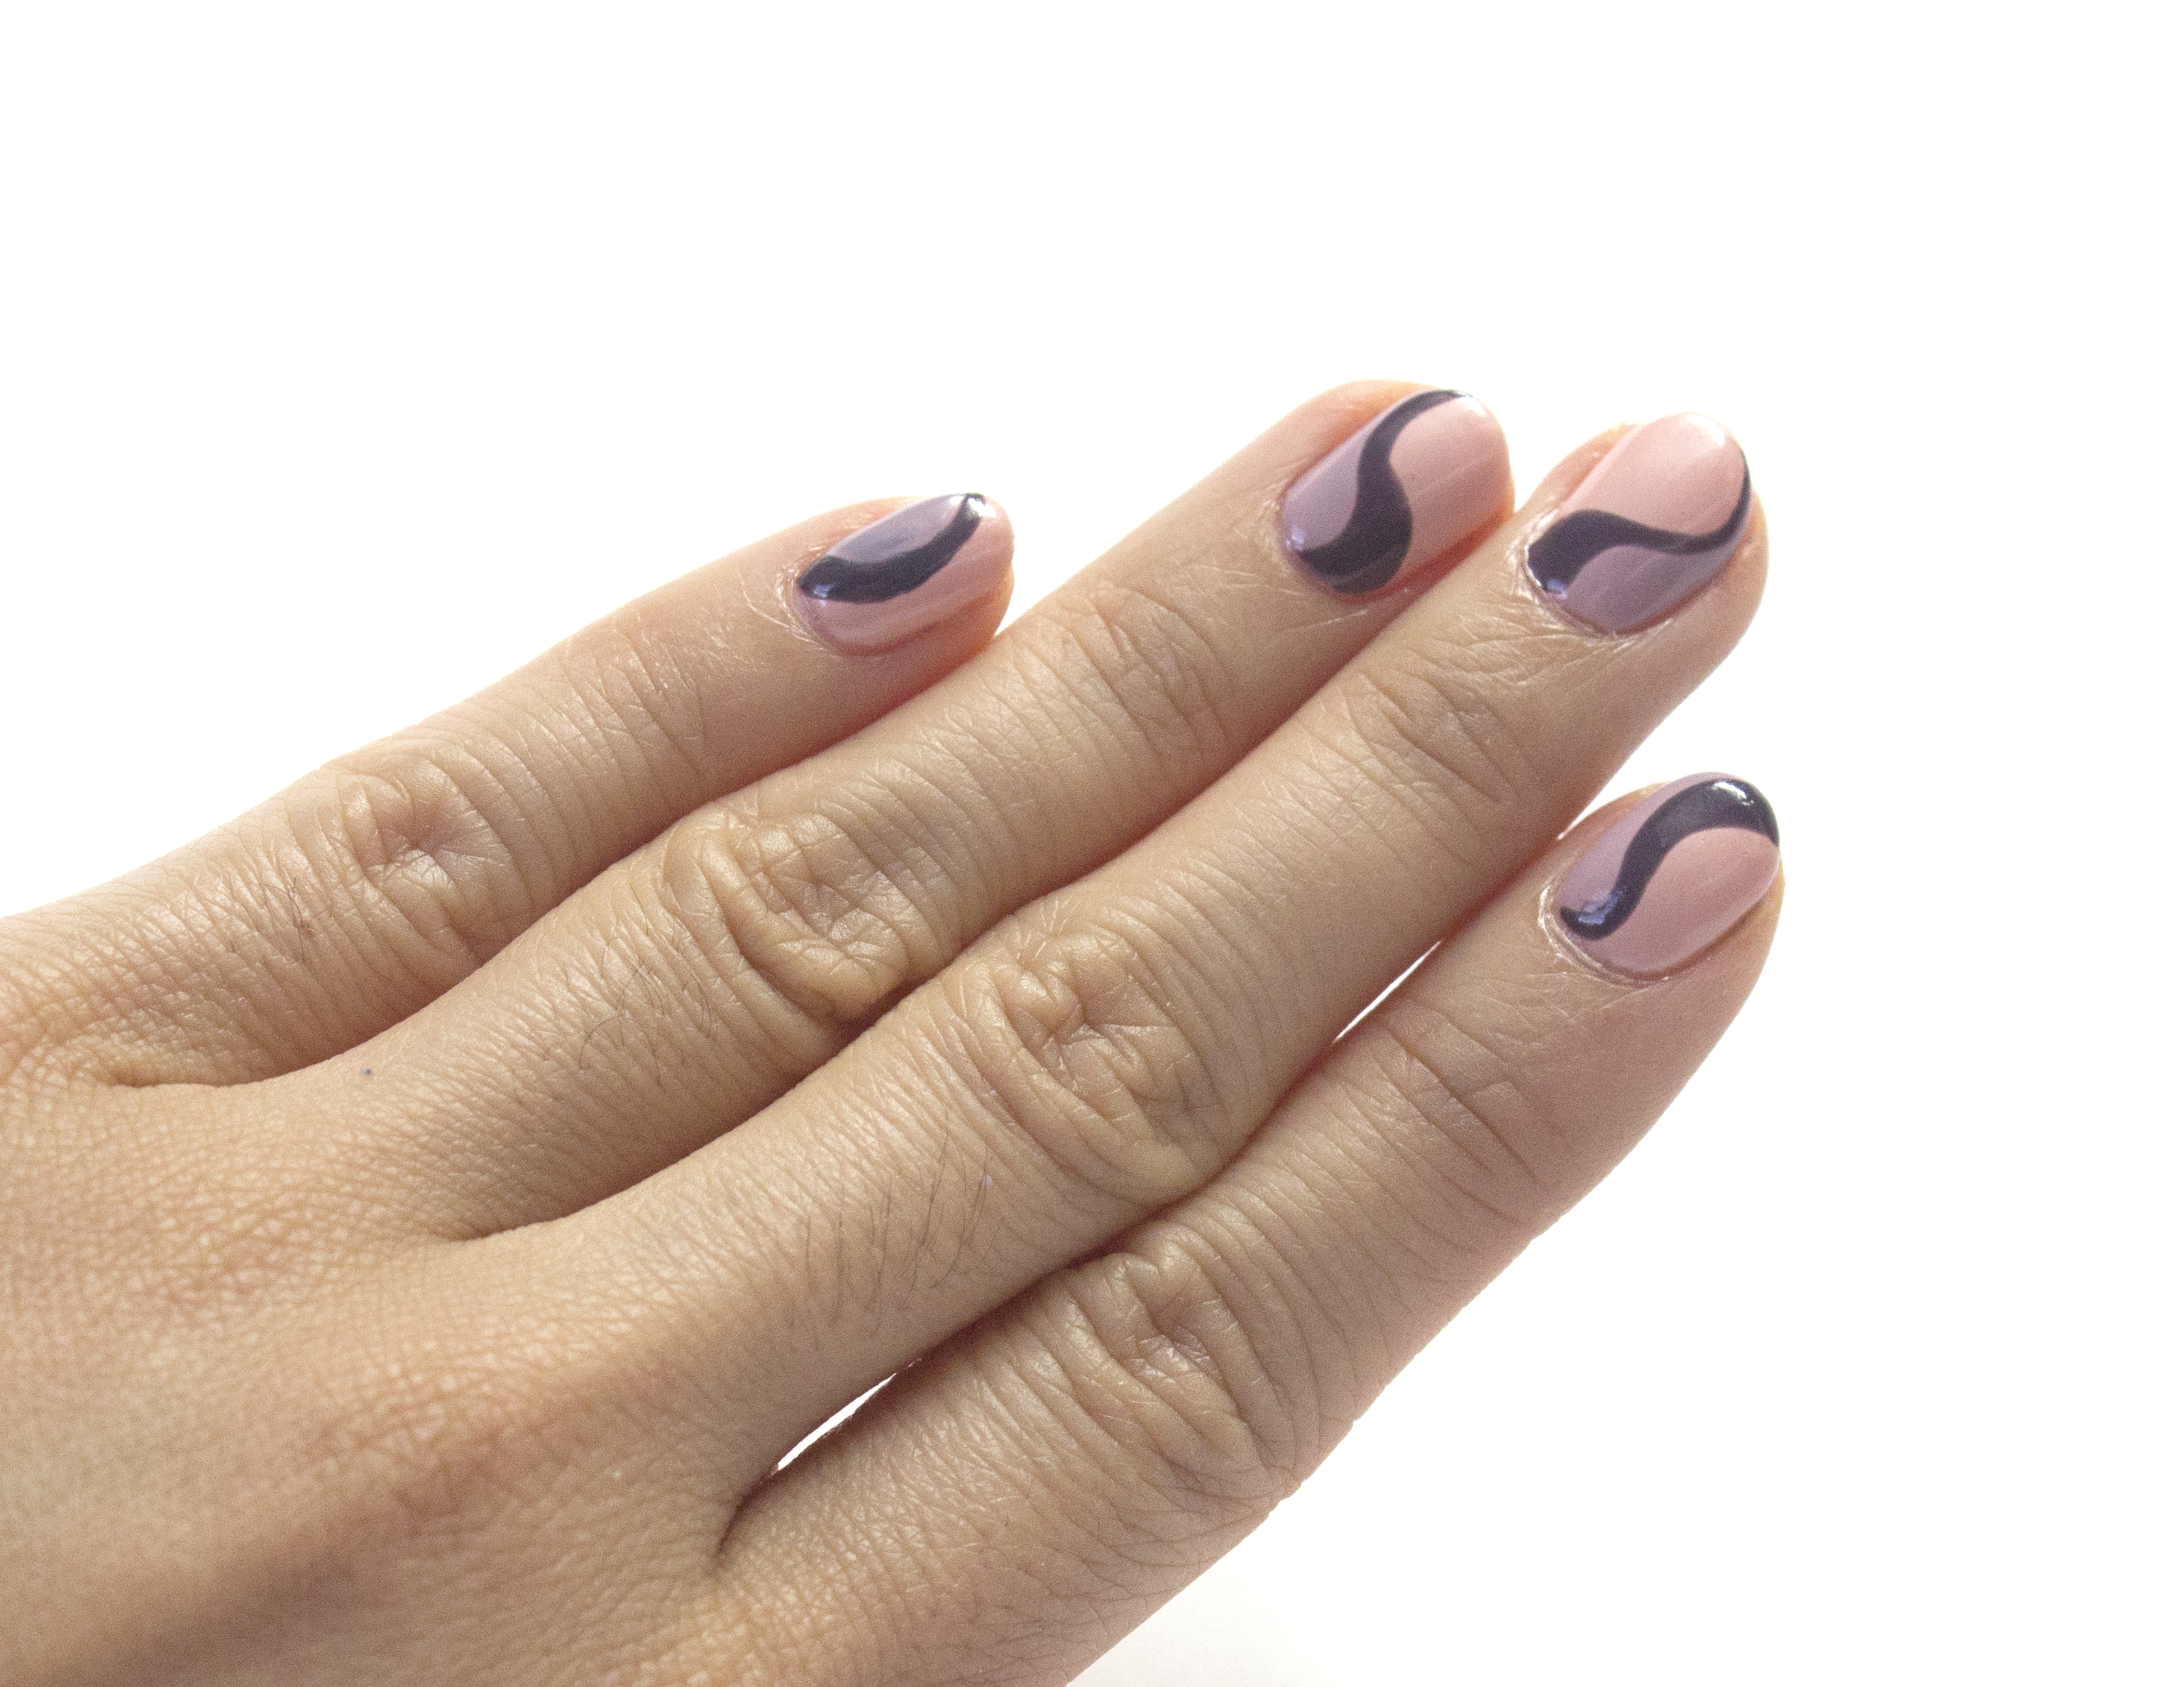 Tip tutorials gelish mini art deco astrowifey using your striper brush dipped in gelish minis jet set paint next to the wave you just created with princess tiara on each nail and cure in gelish led prinsesfo Choice Image